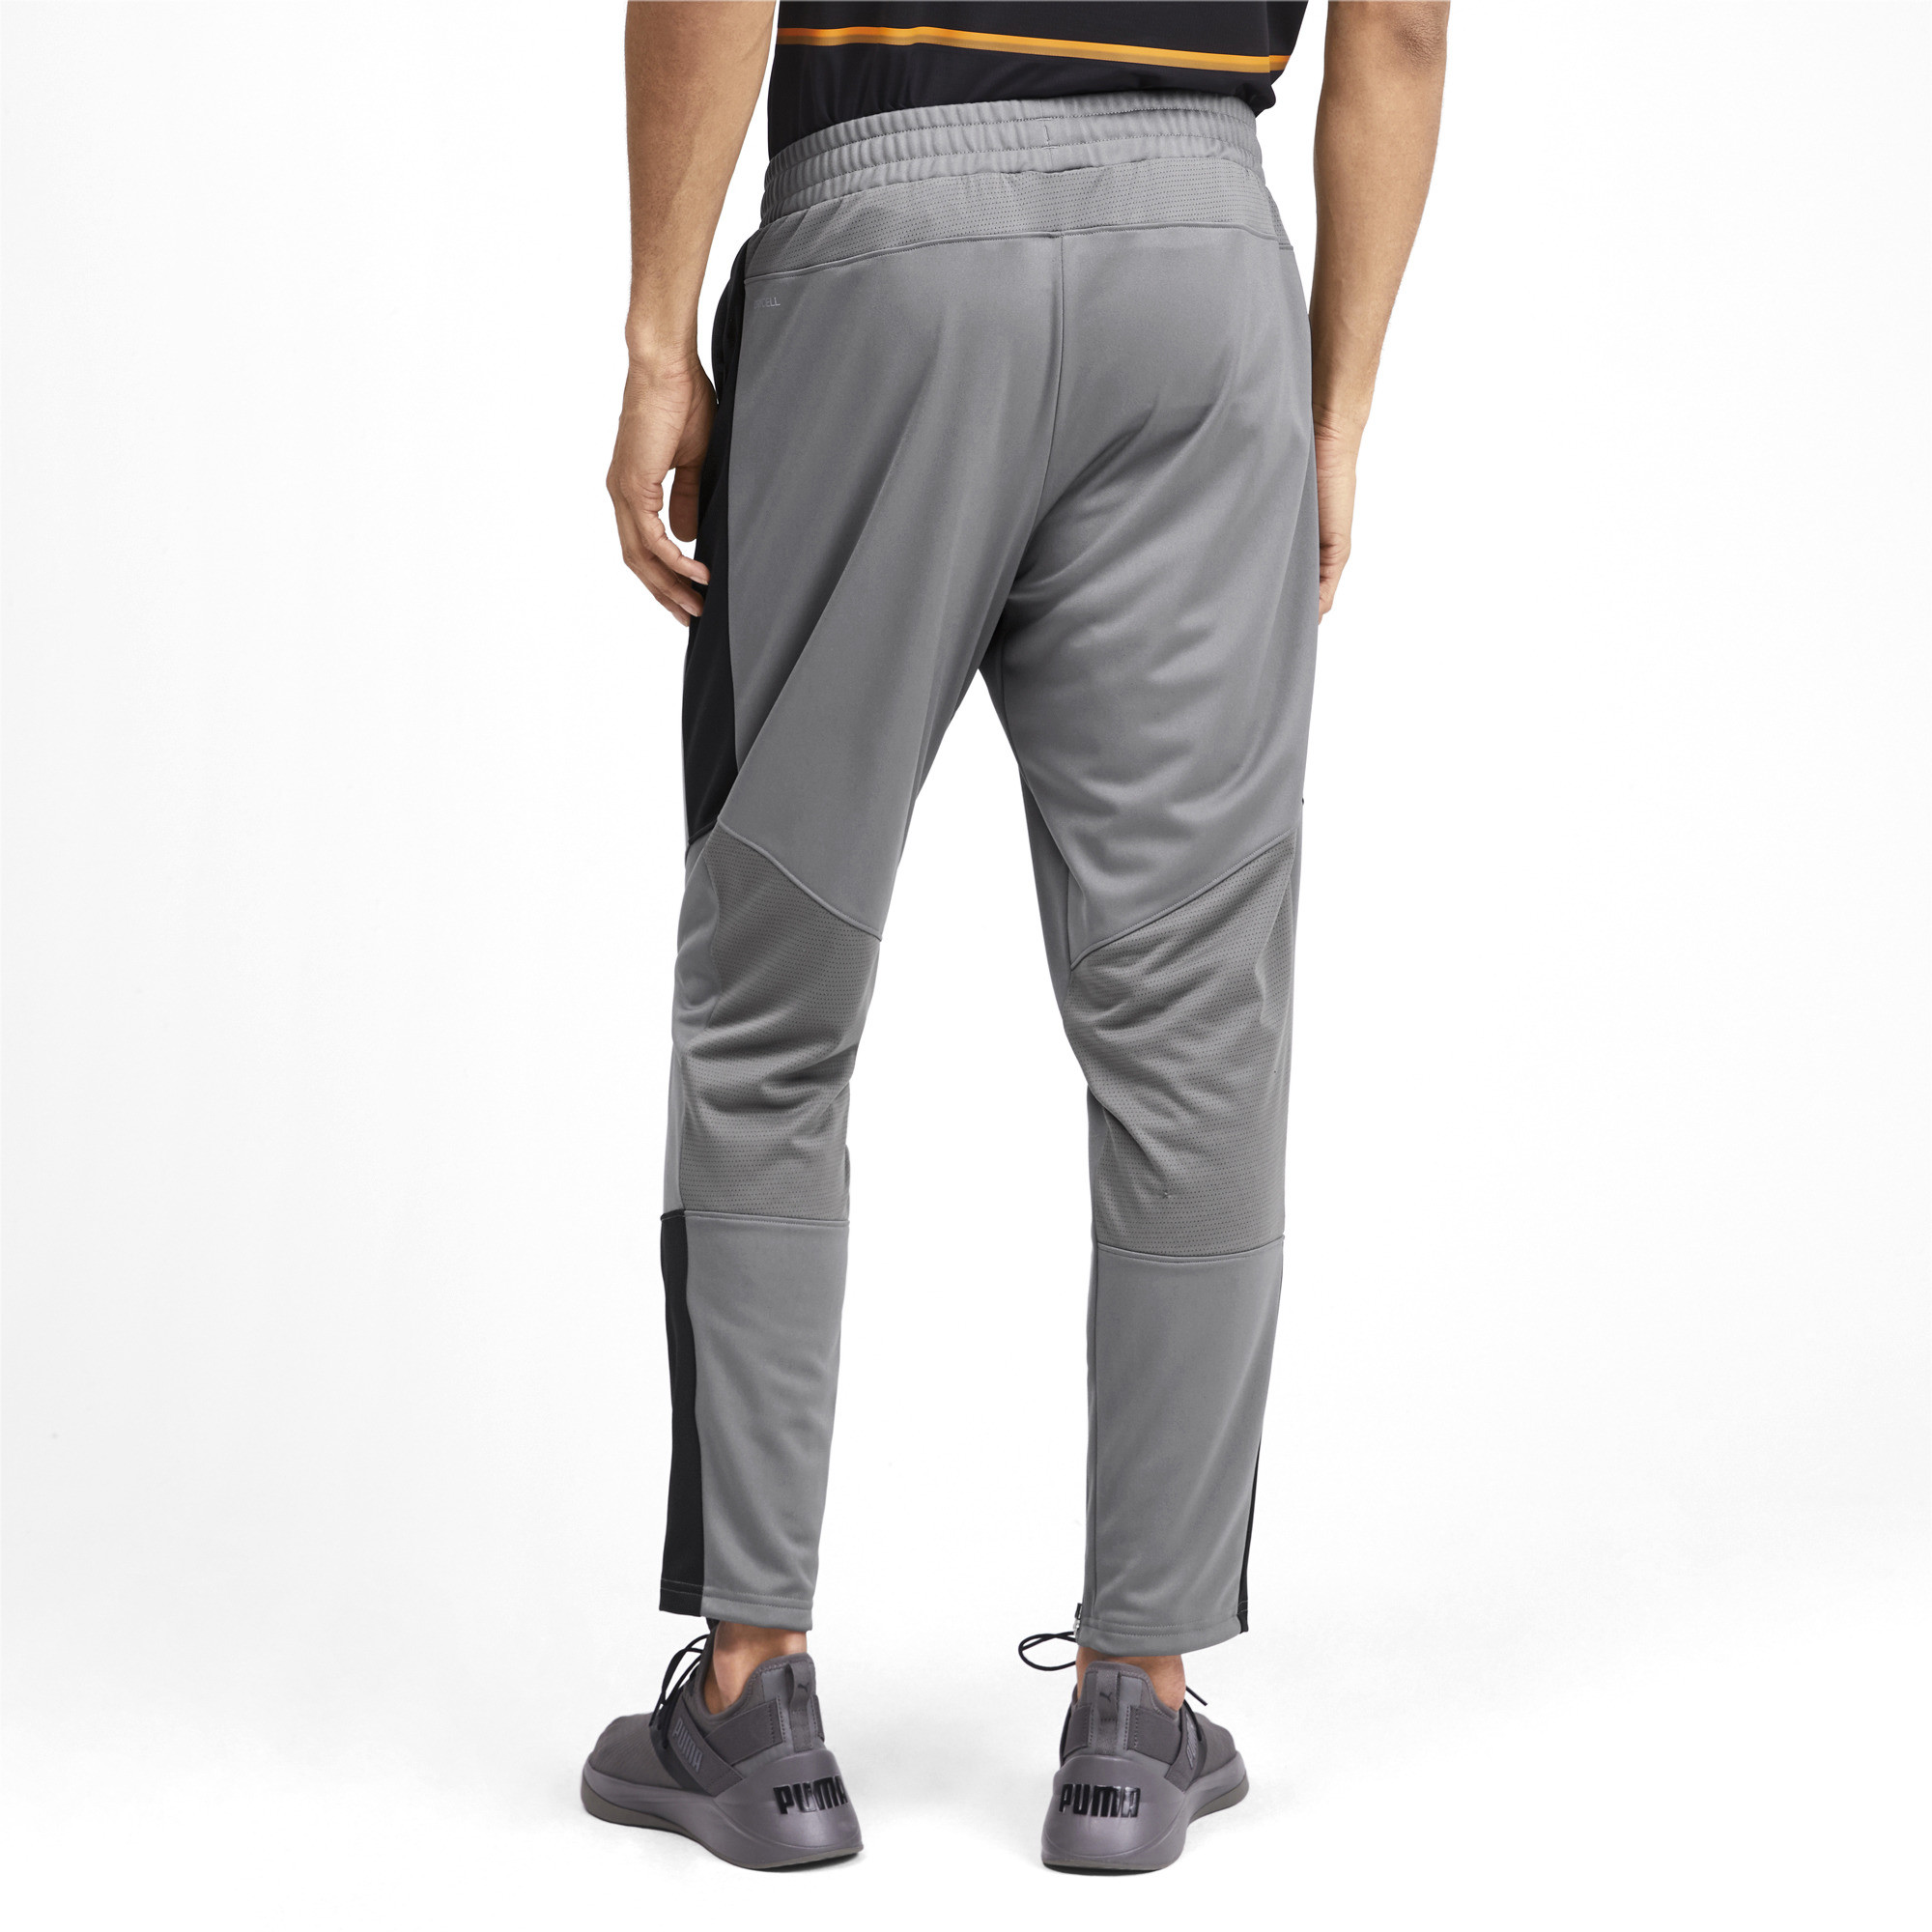 PUMA-Men-039-s-Blaster-Pants thumbnail 15